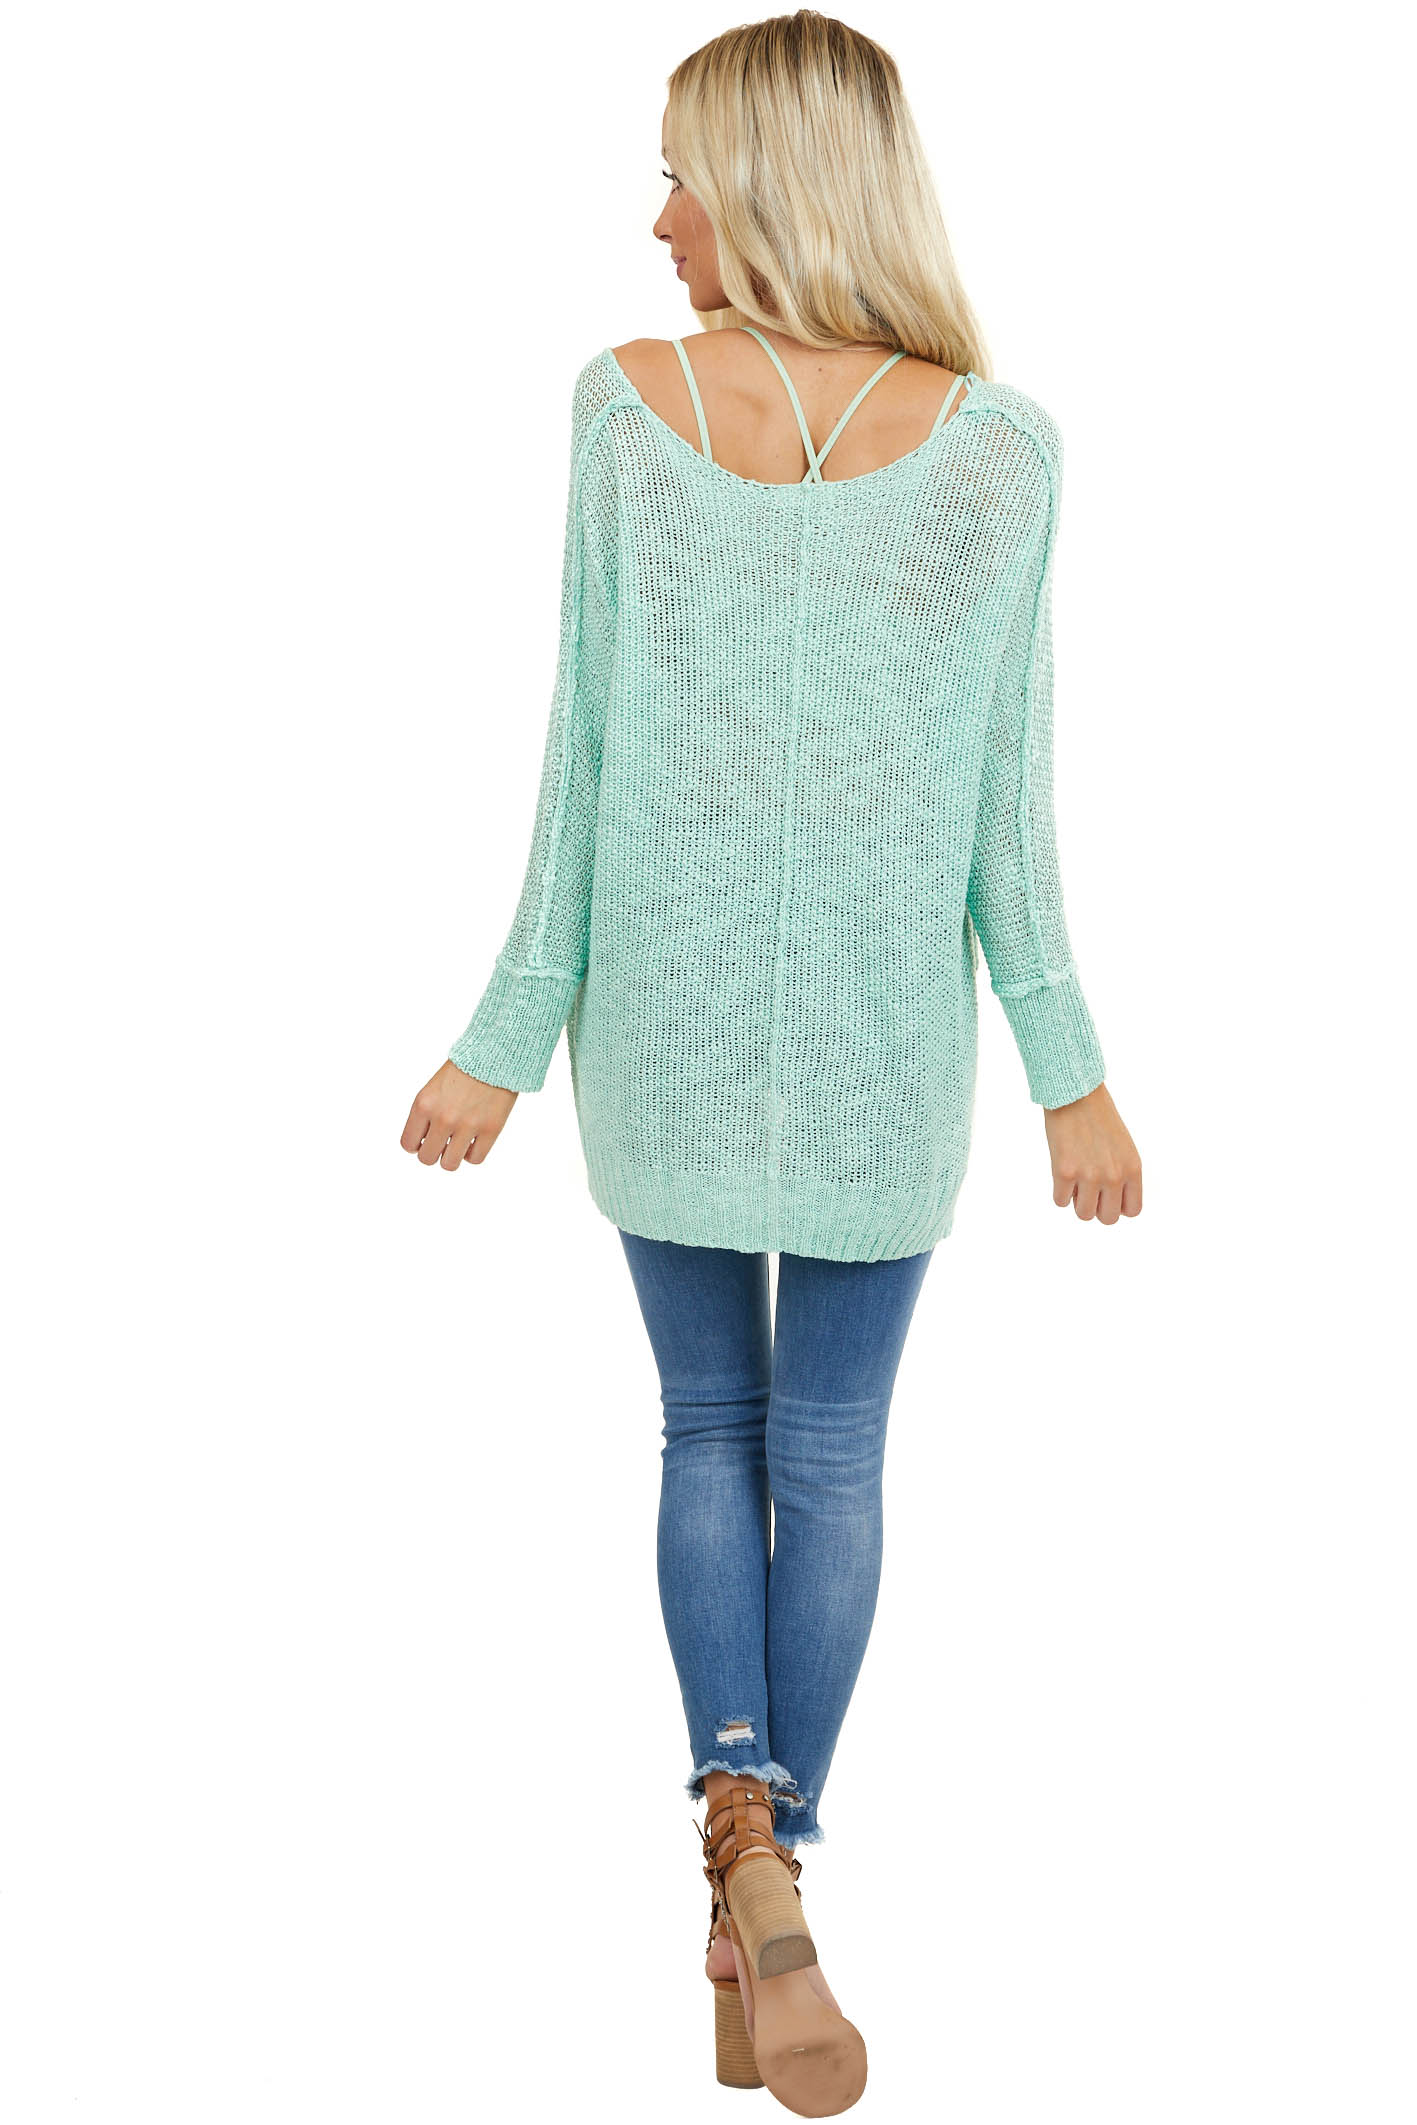 Mint Knit Lightweight Sweater with Long Sleeves